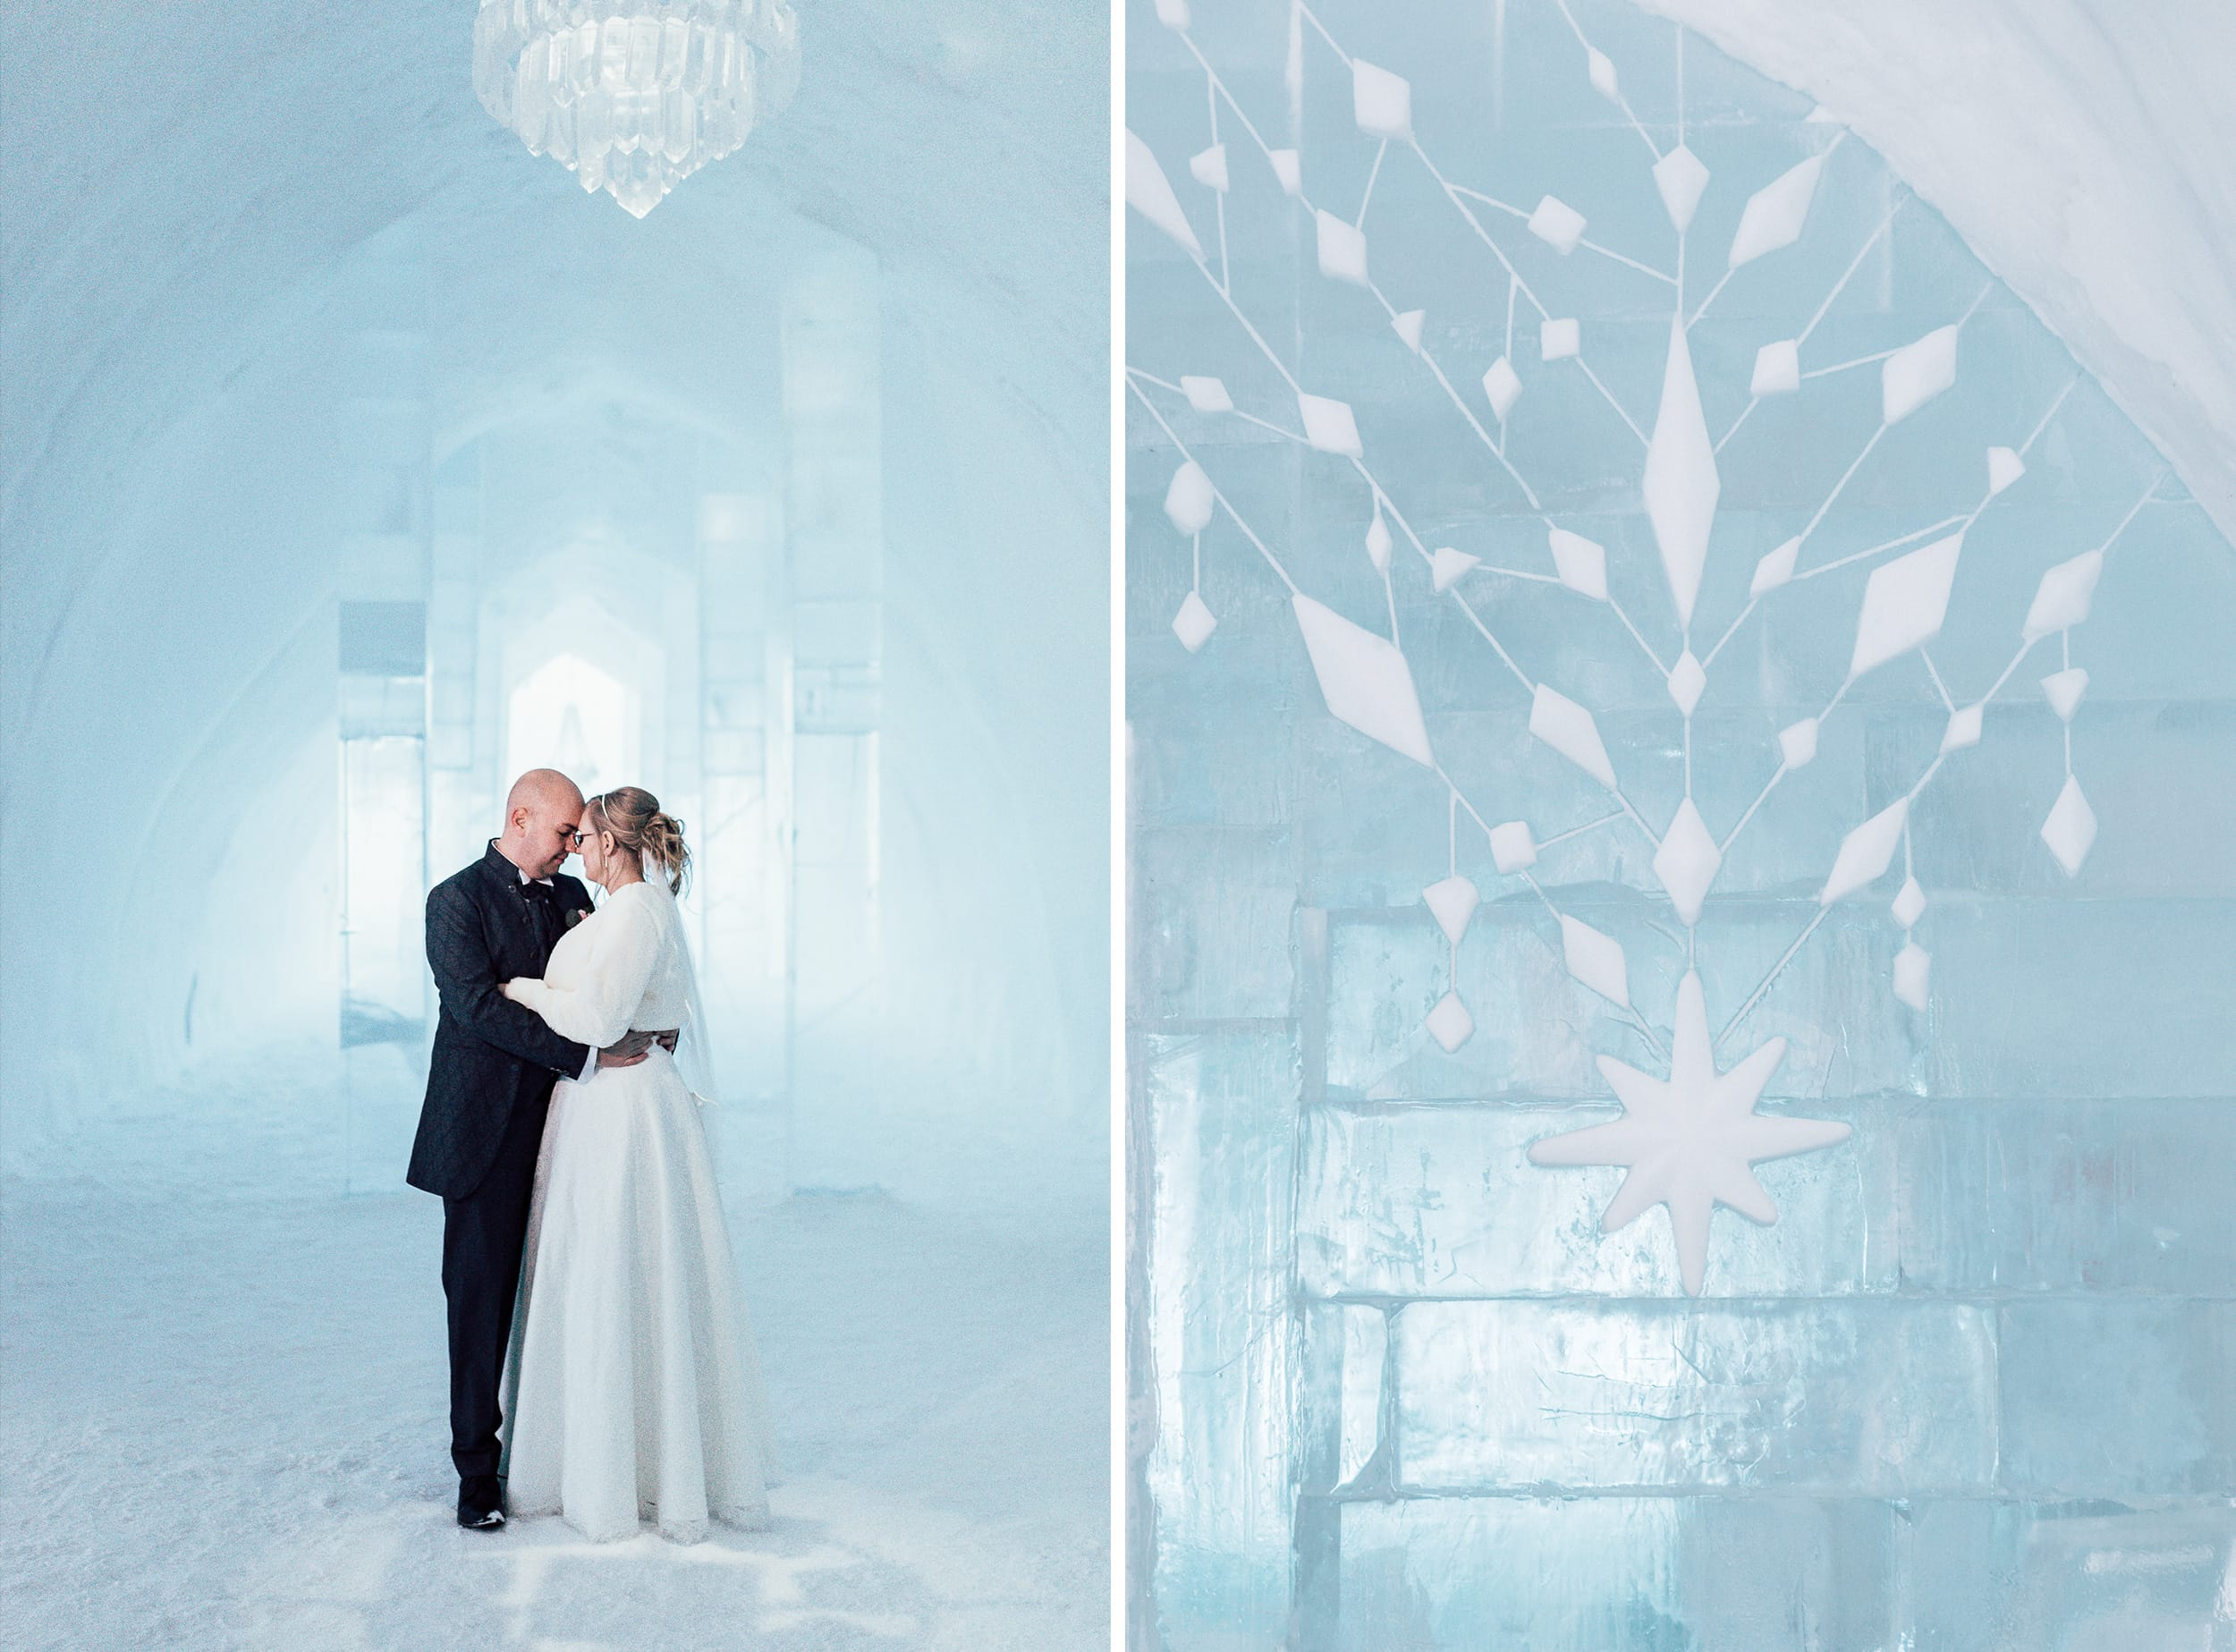 Wedding at the Ice Hotel in Jukkasjärvi